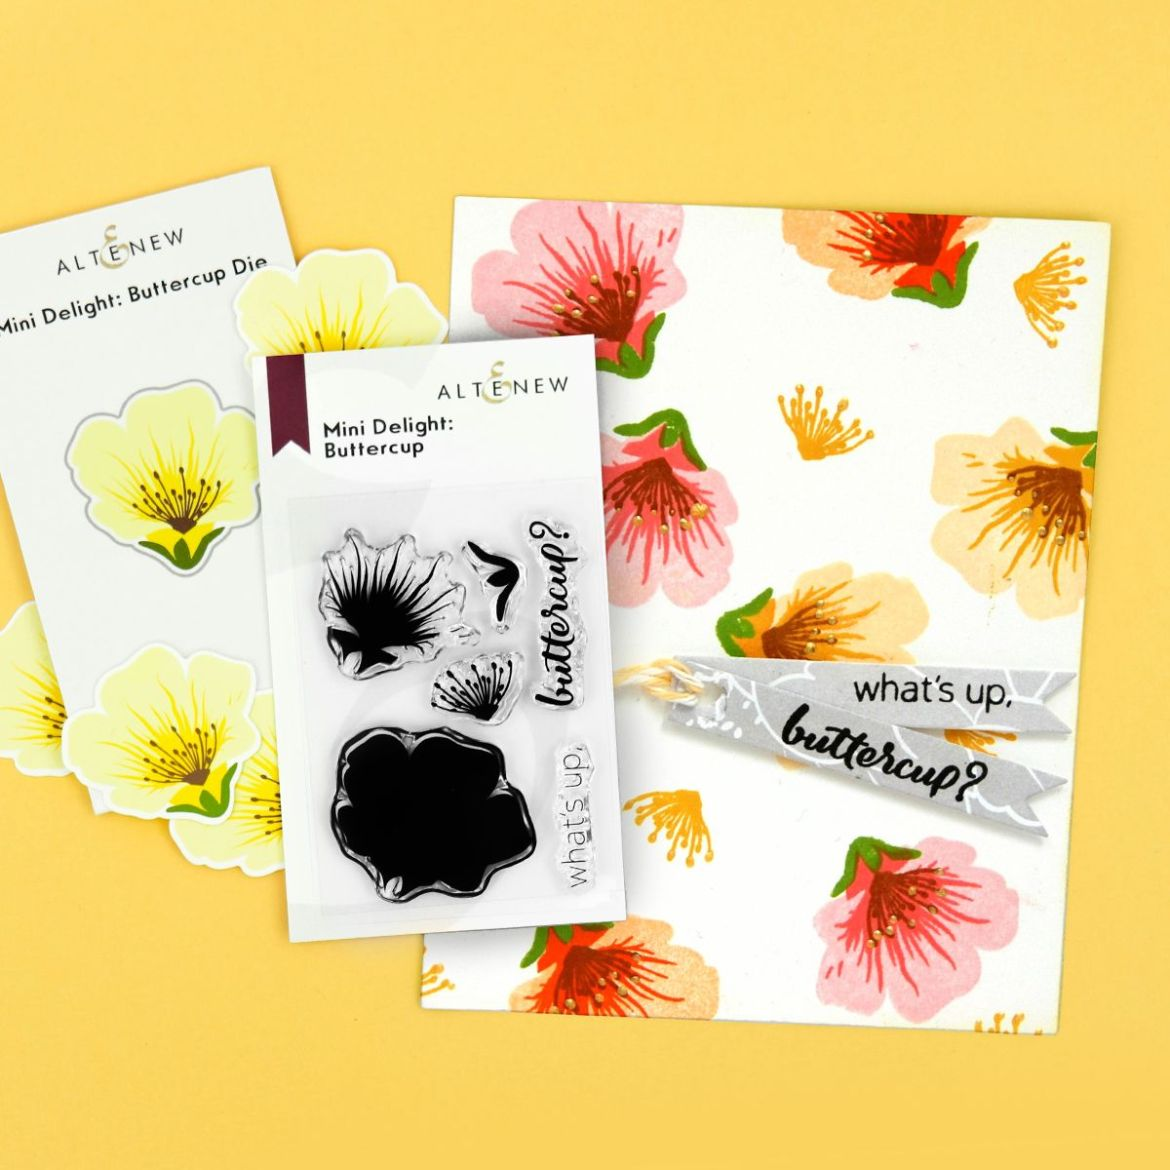 Mini Delight: Buttercup stamp and die set and sample card